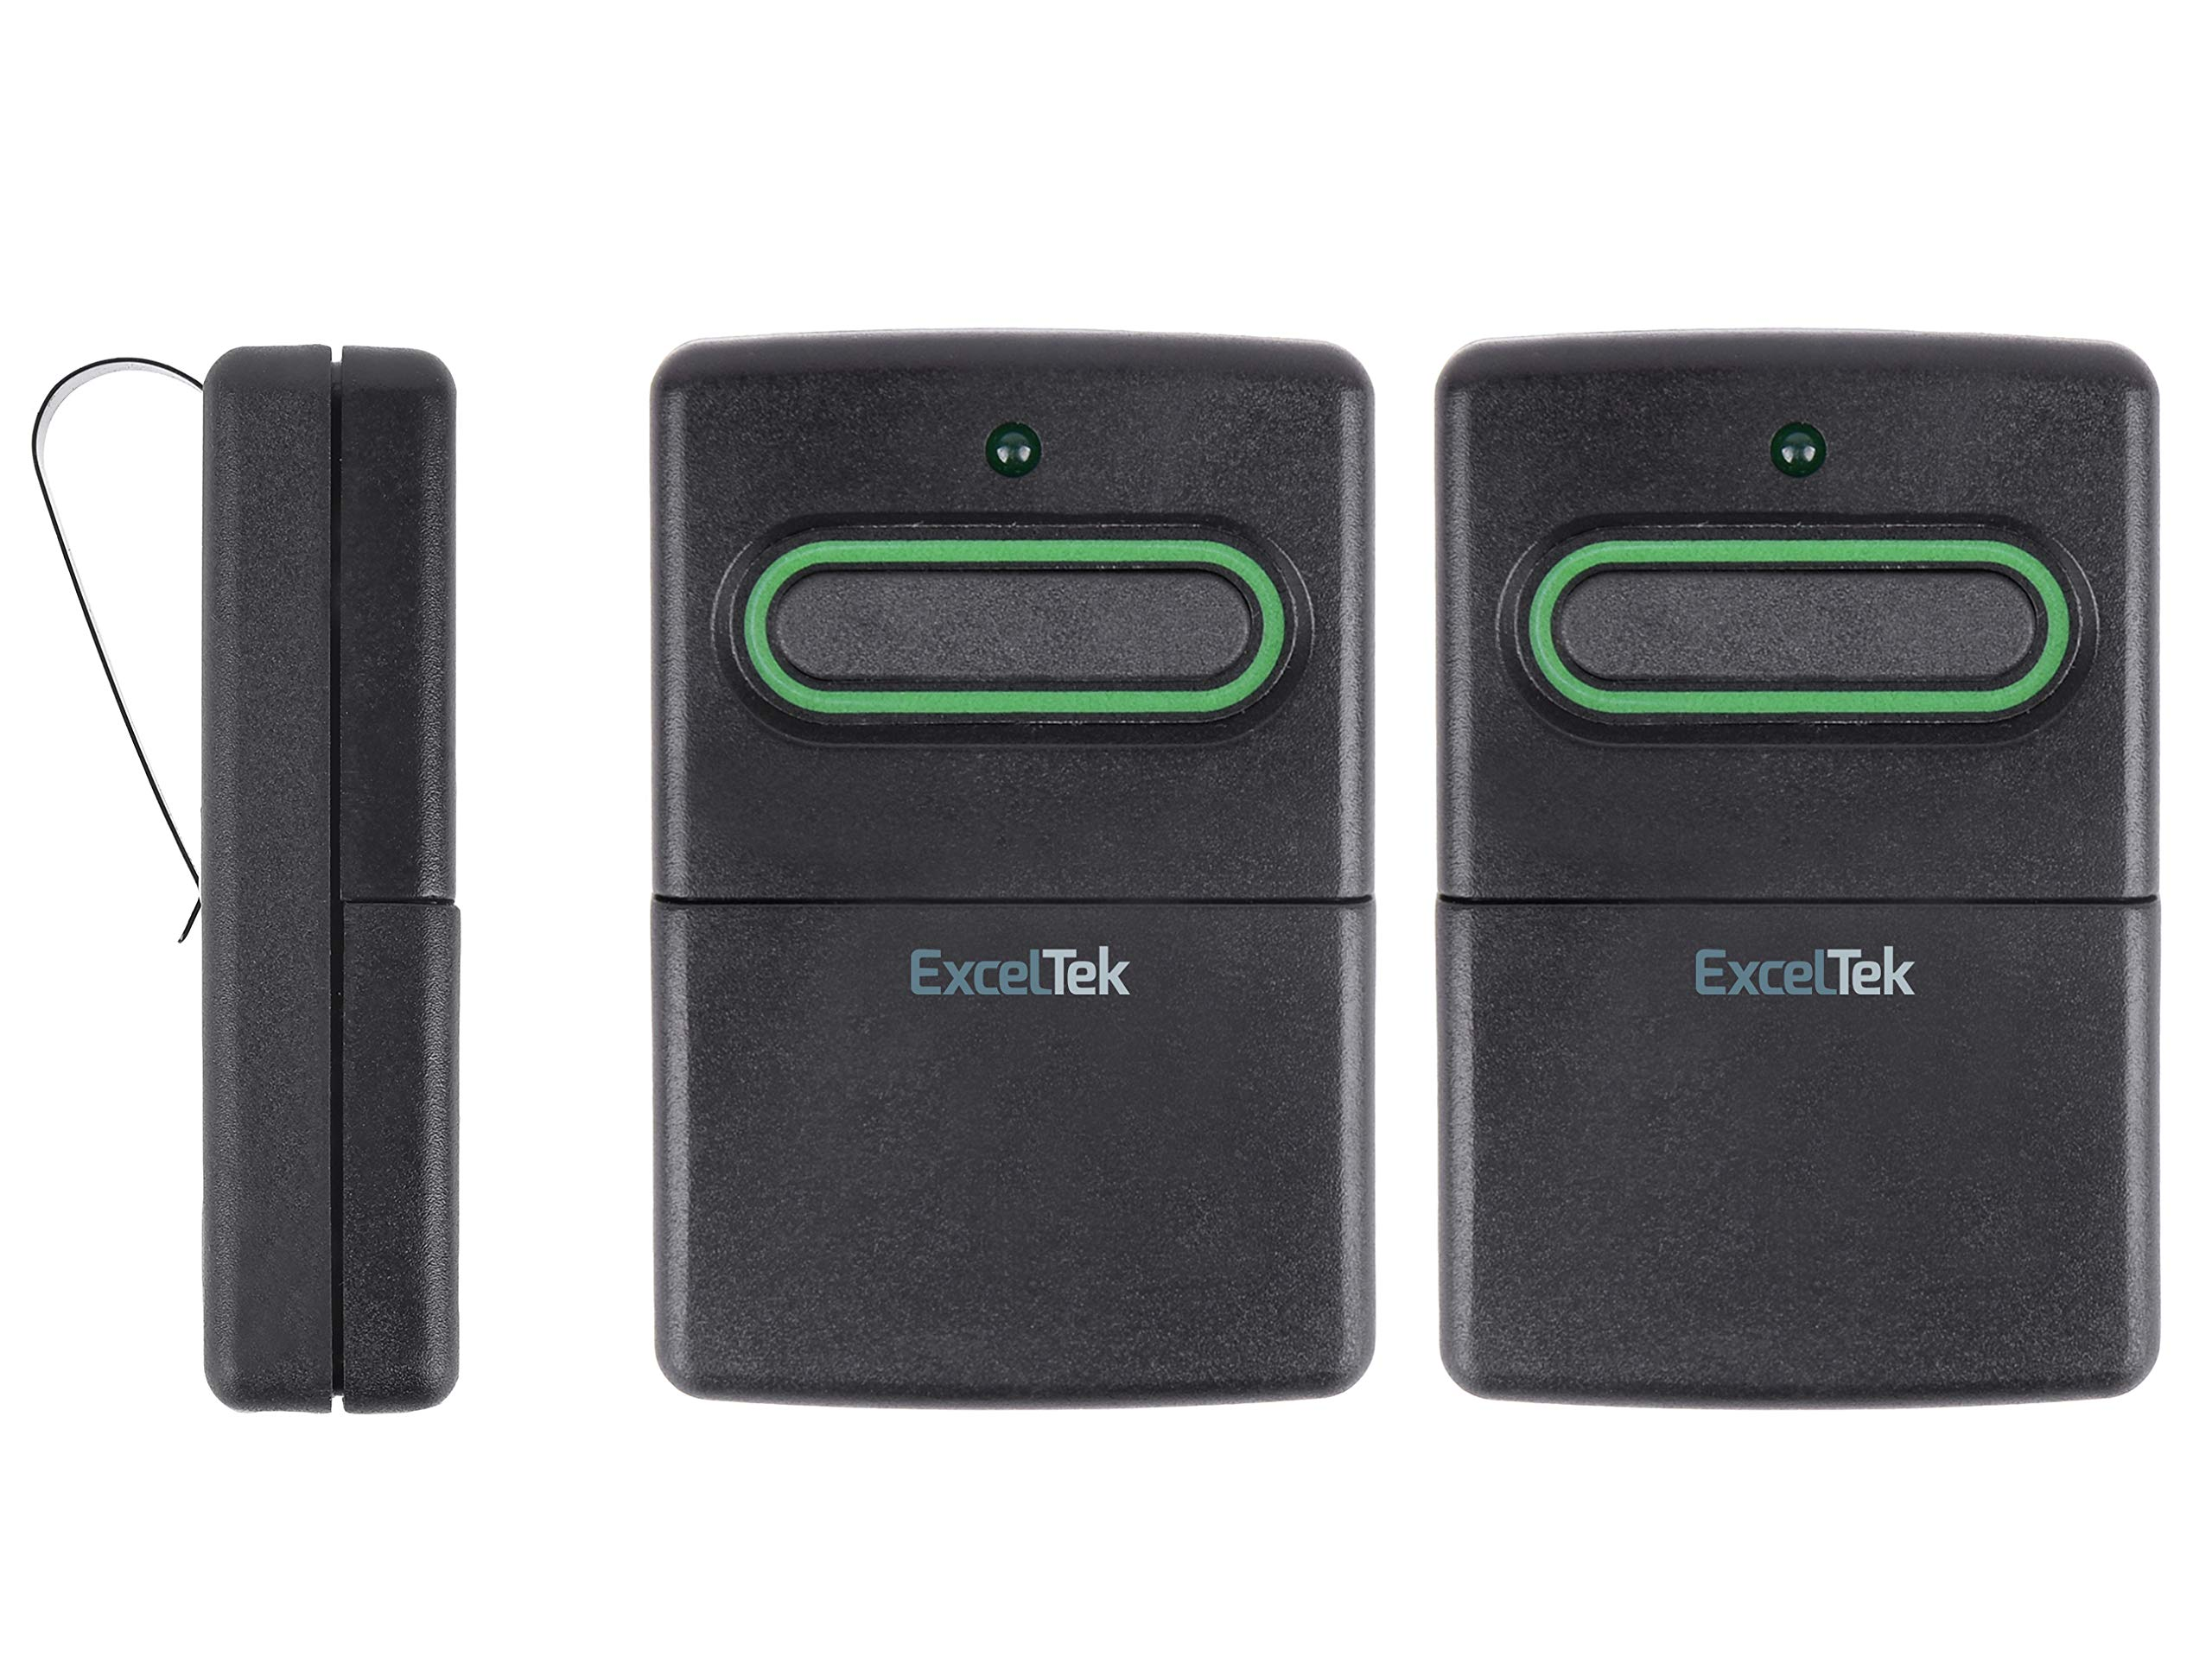 ExcelTek RB741 Compatible Garage Door Remote Control with GTO Mighty Mule RB743 FM134 FM135 318MHz (3 Pack)